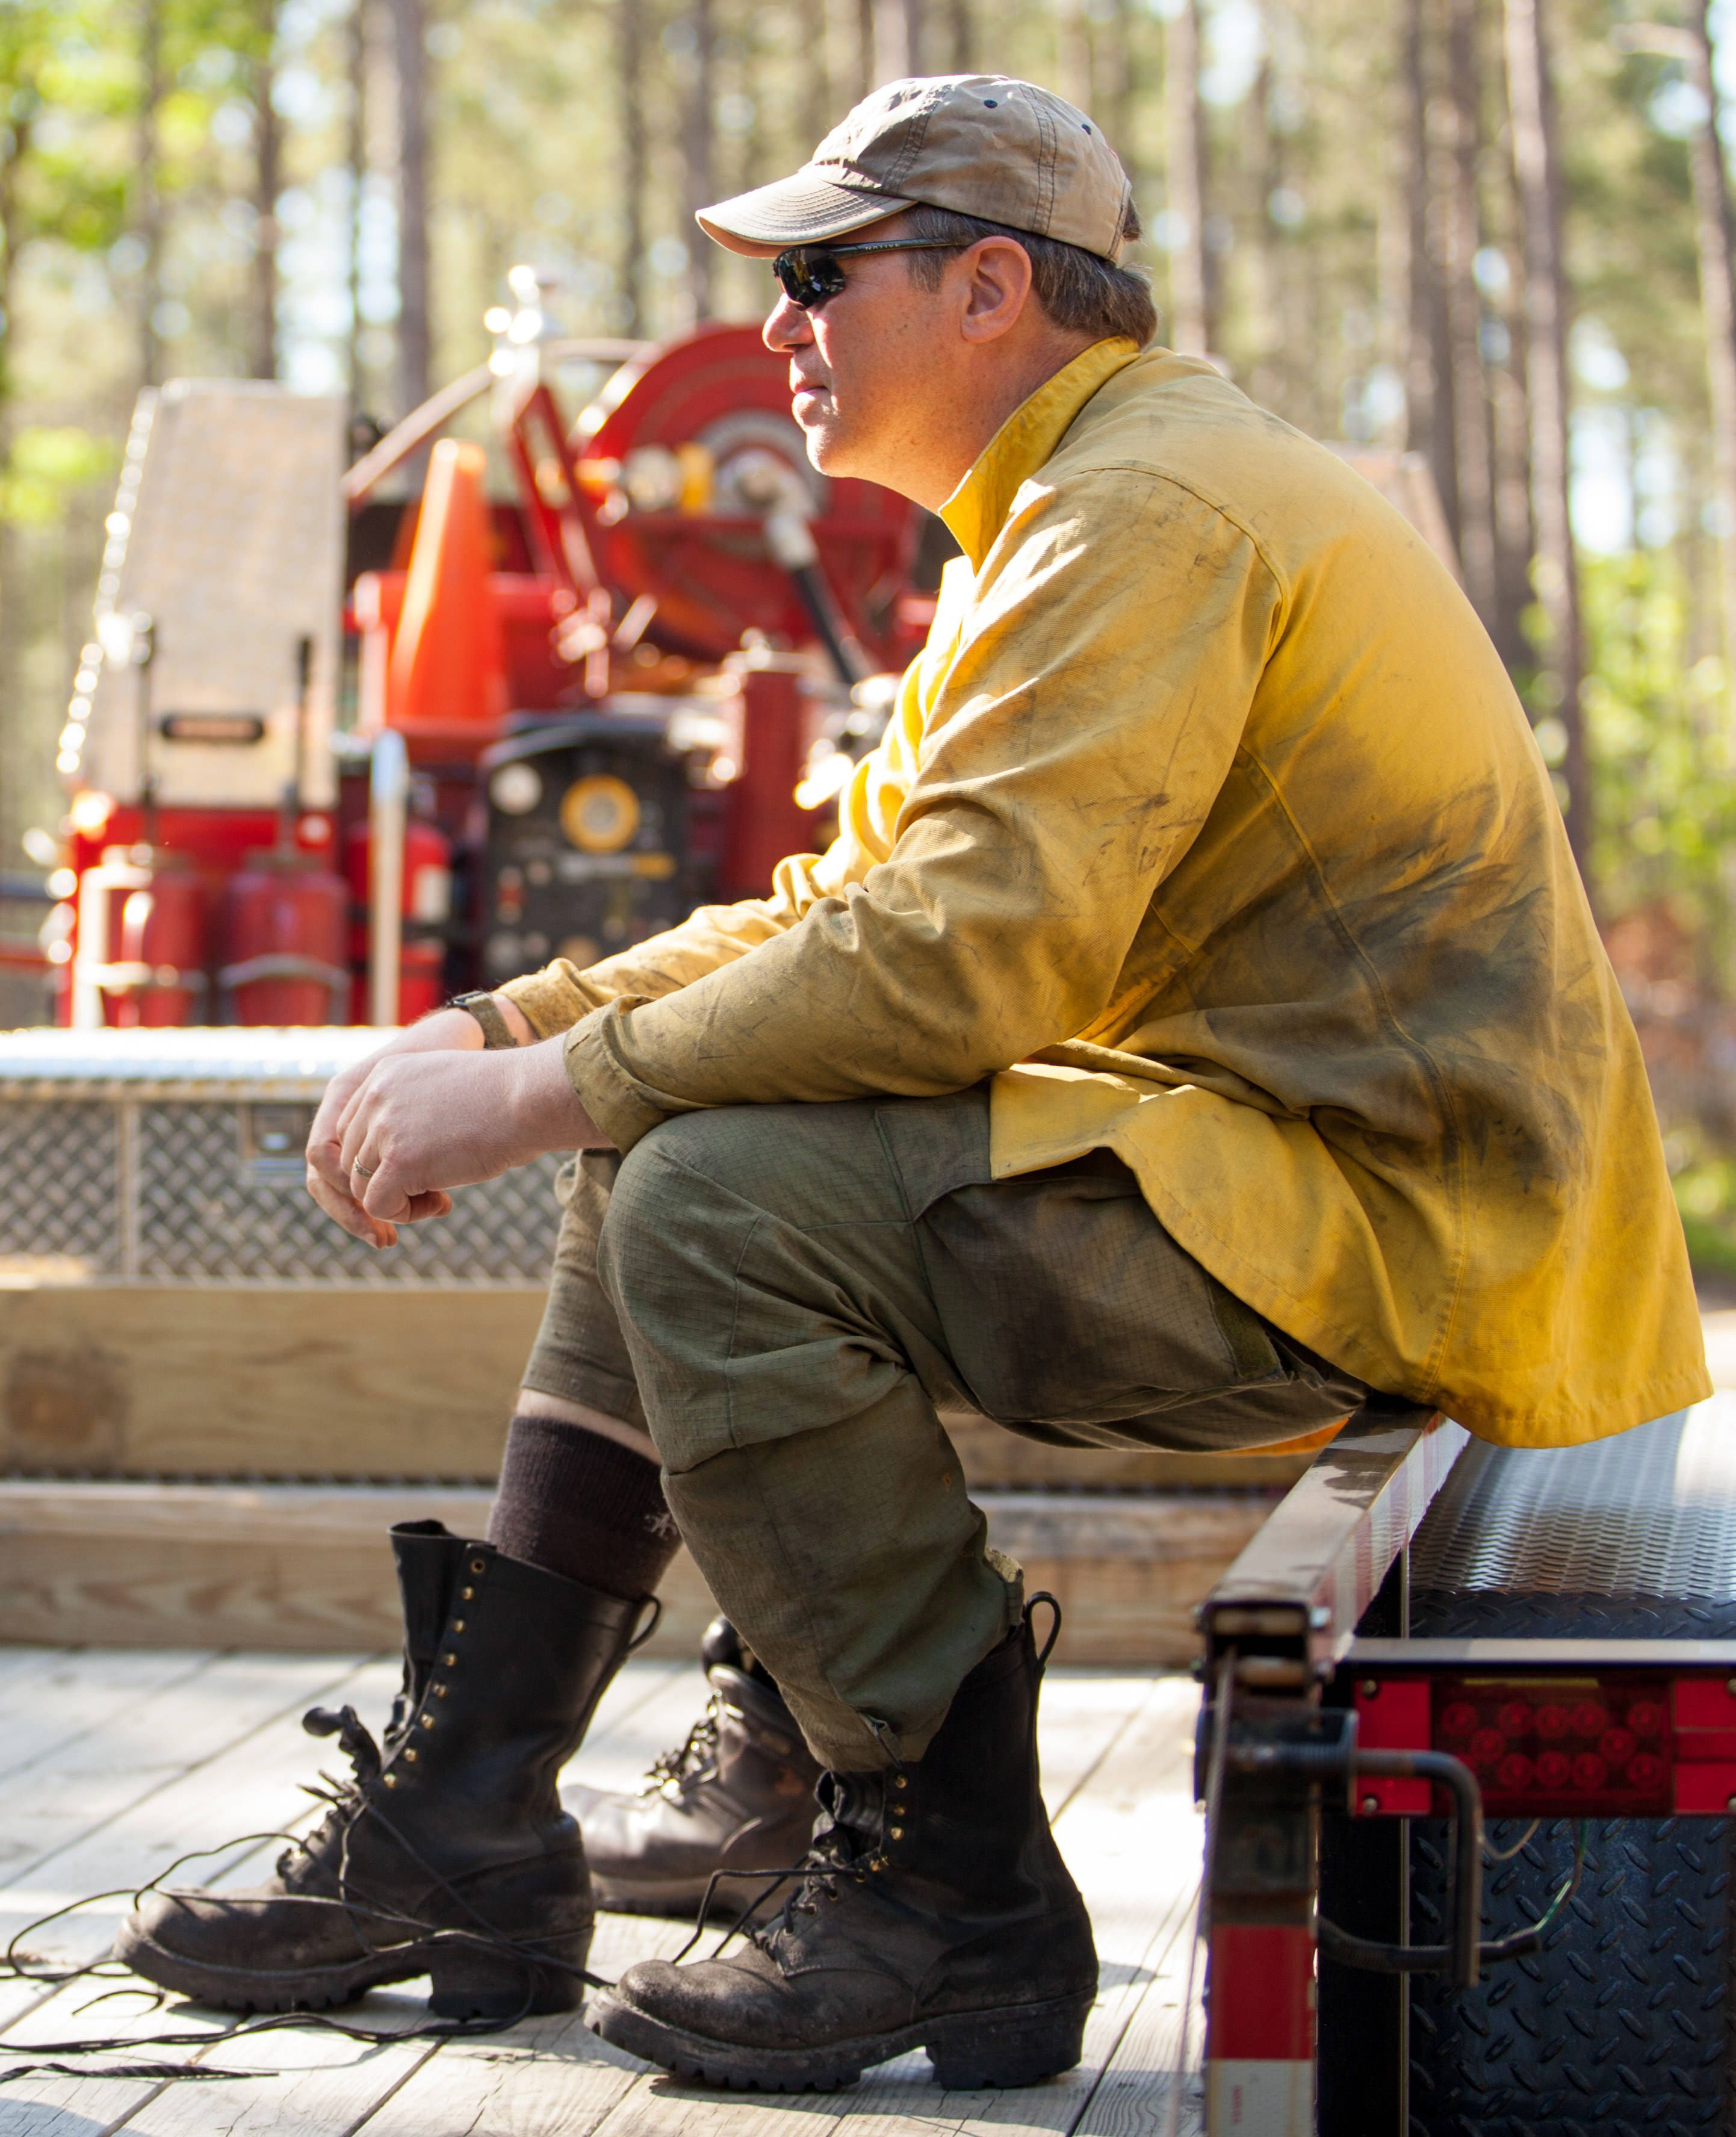 A man wearing sunglasses and a soot streaked yellow shirt sits and rests at the end of a controlled burn.